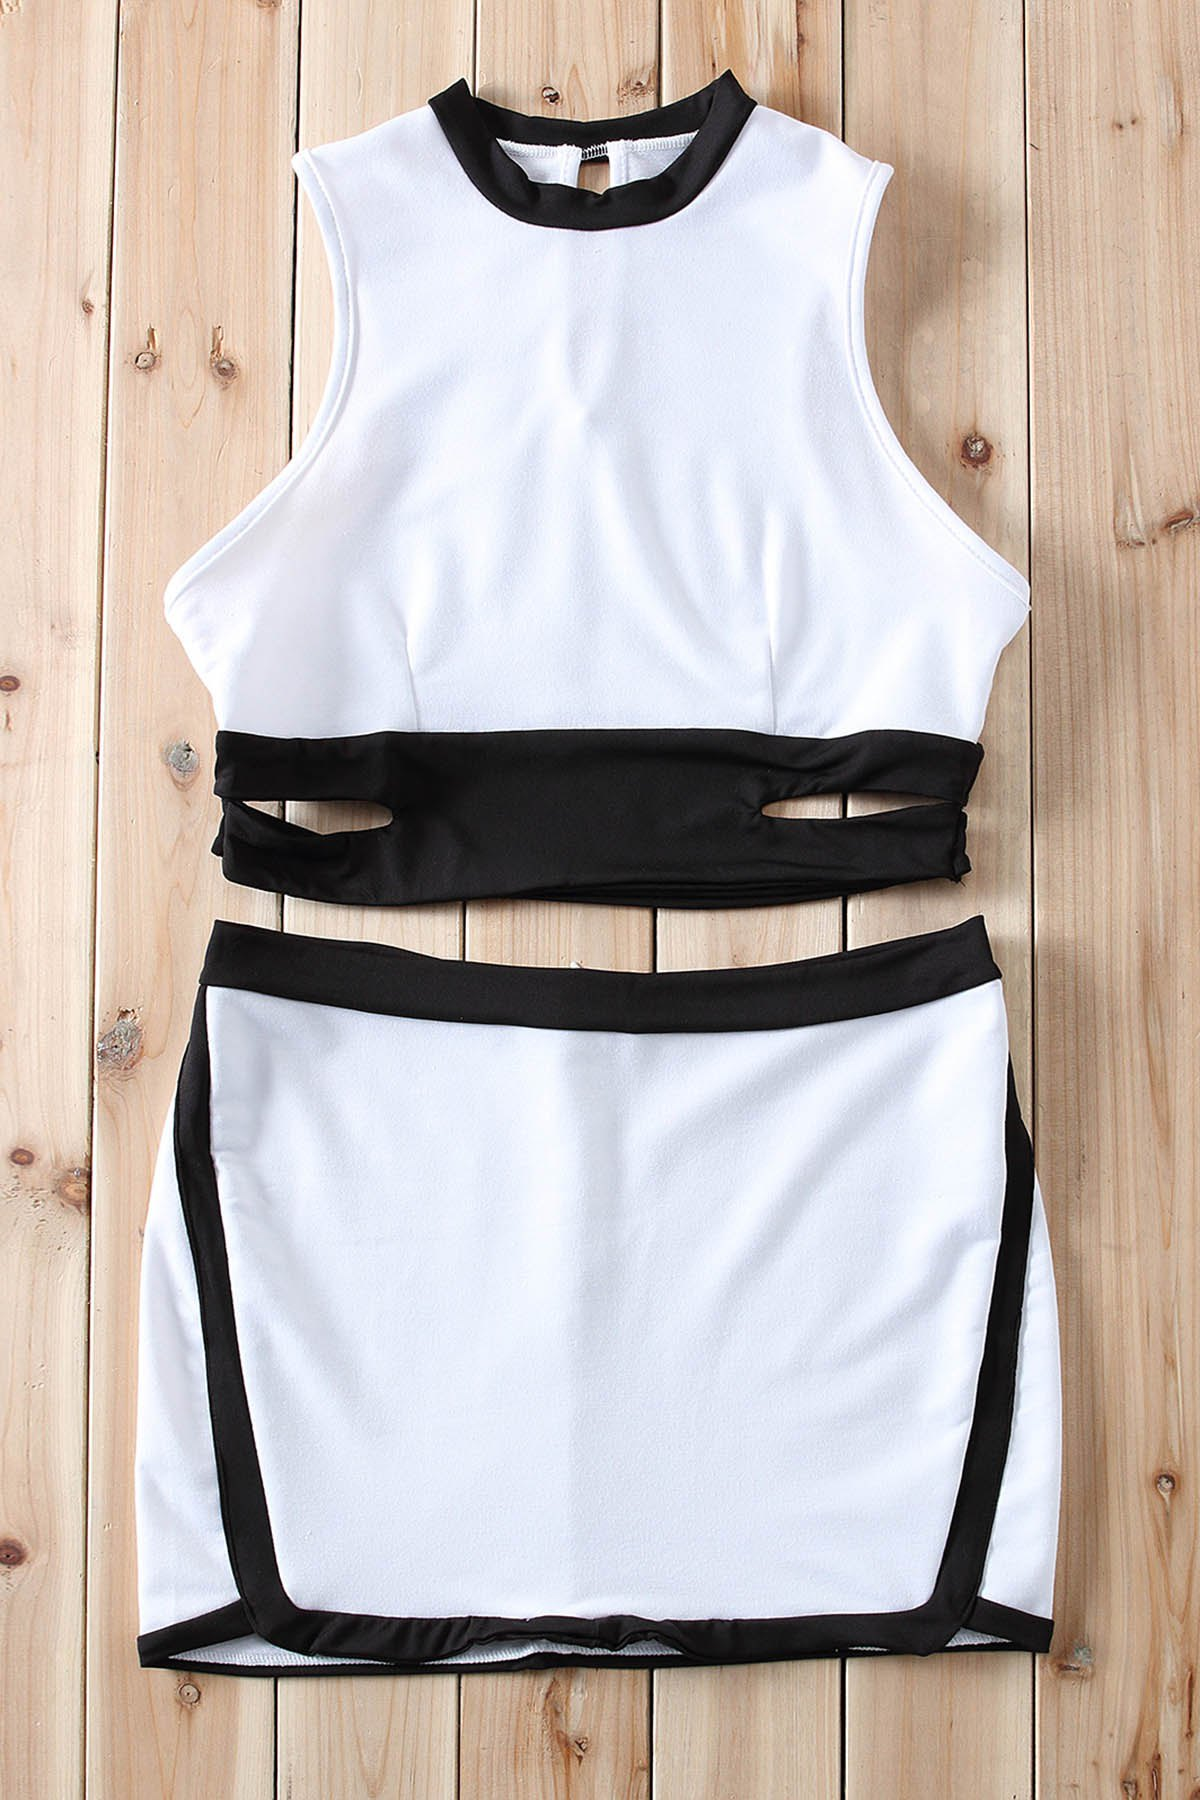 Sexy Hollow Out Stand Collar Backless Crop Top and Skirt Twinset For Women